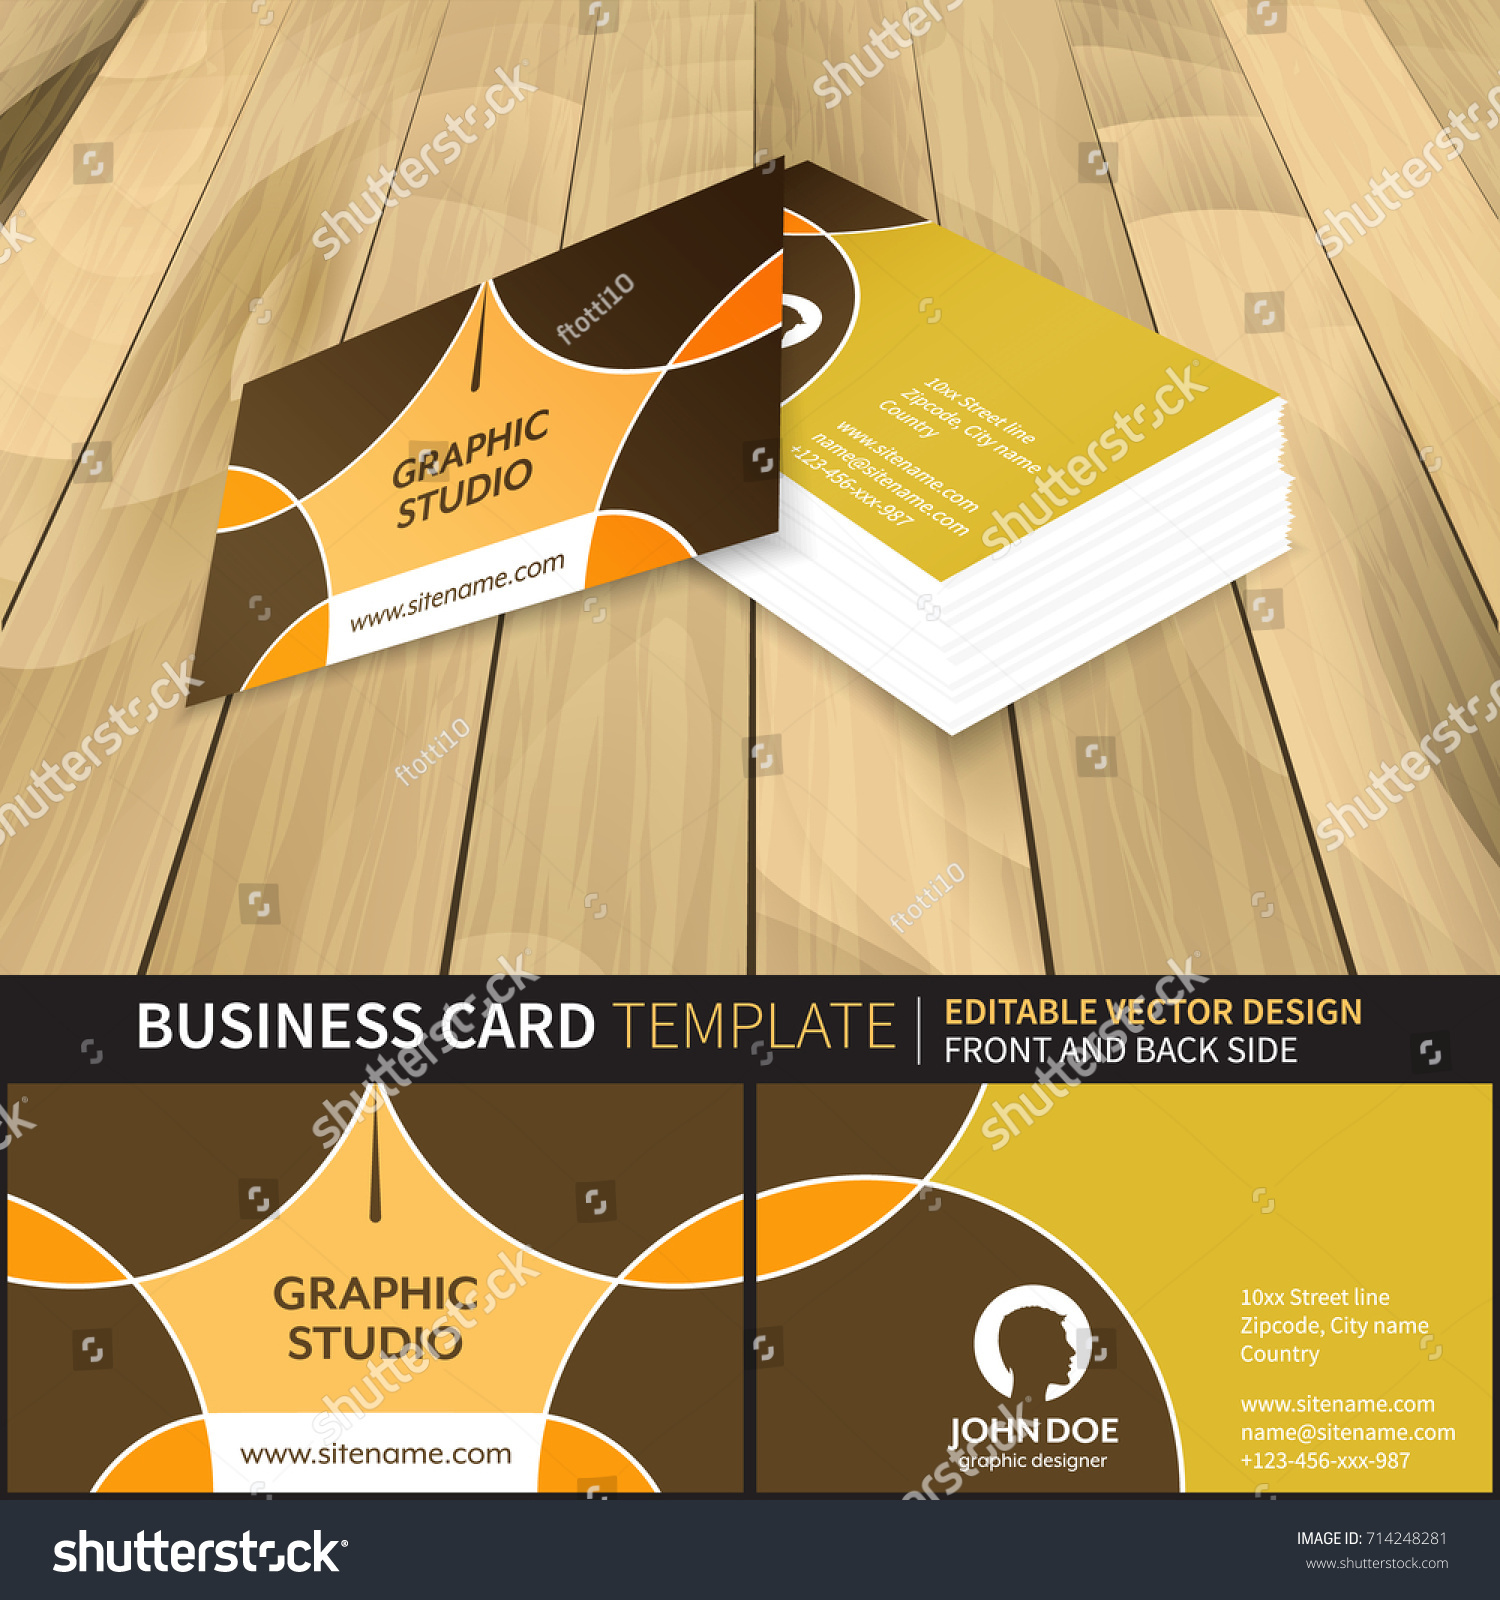 Business Card Template Graphic Studio Front Stock Vector 714248281 ...